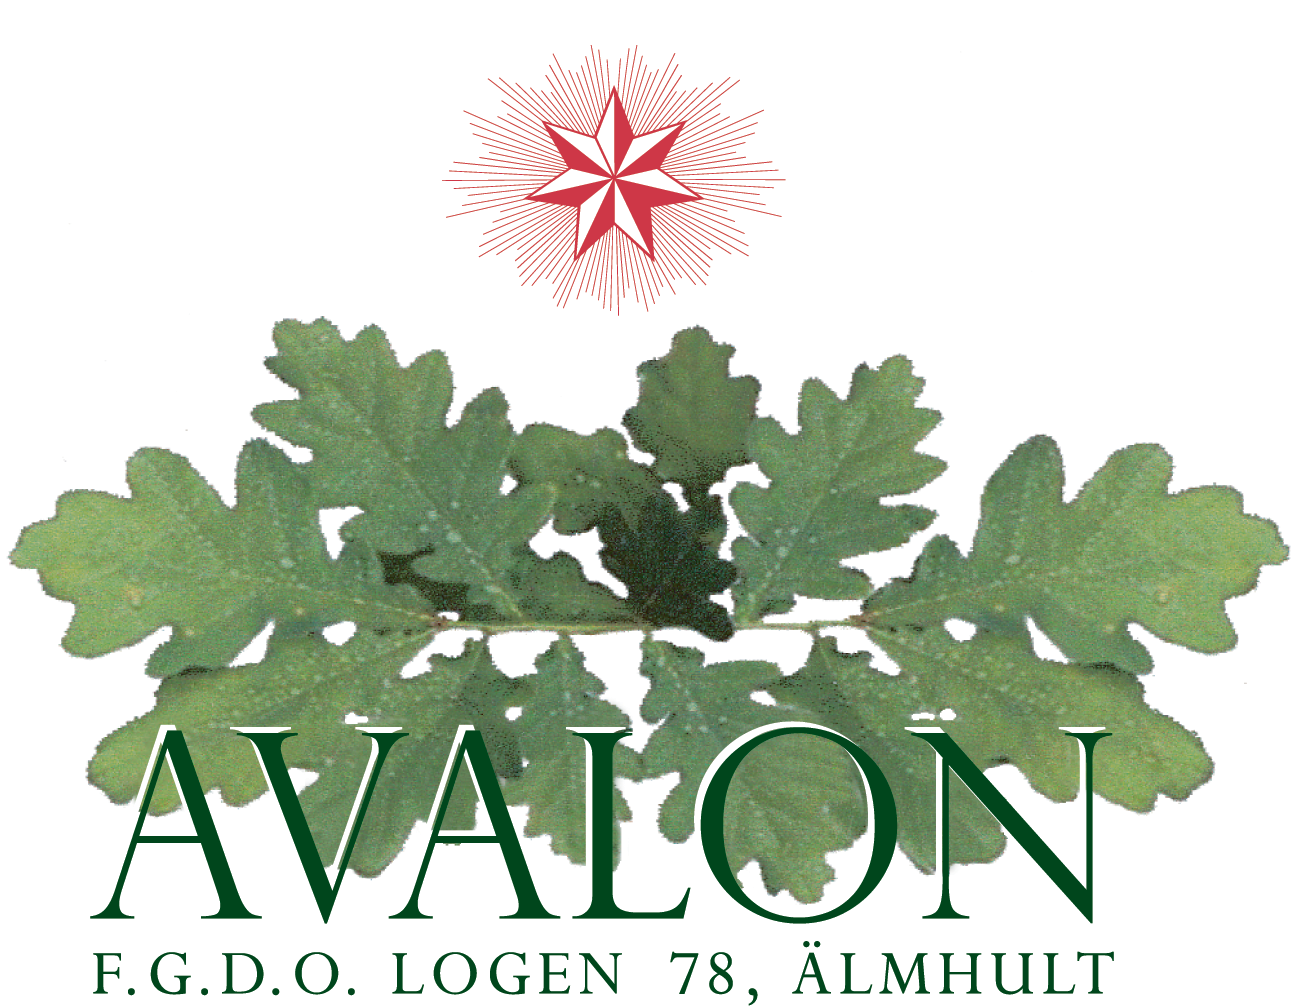 Logen Avalon